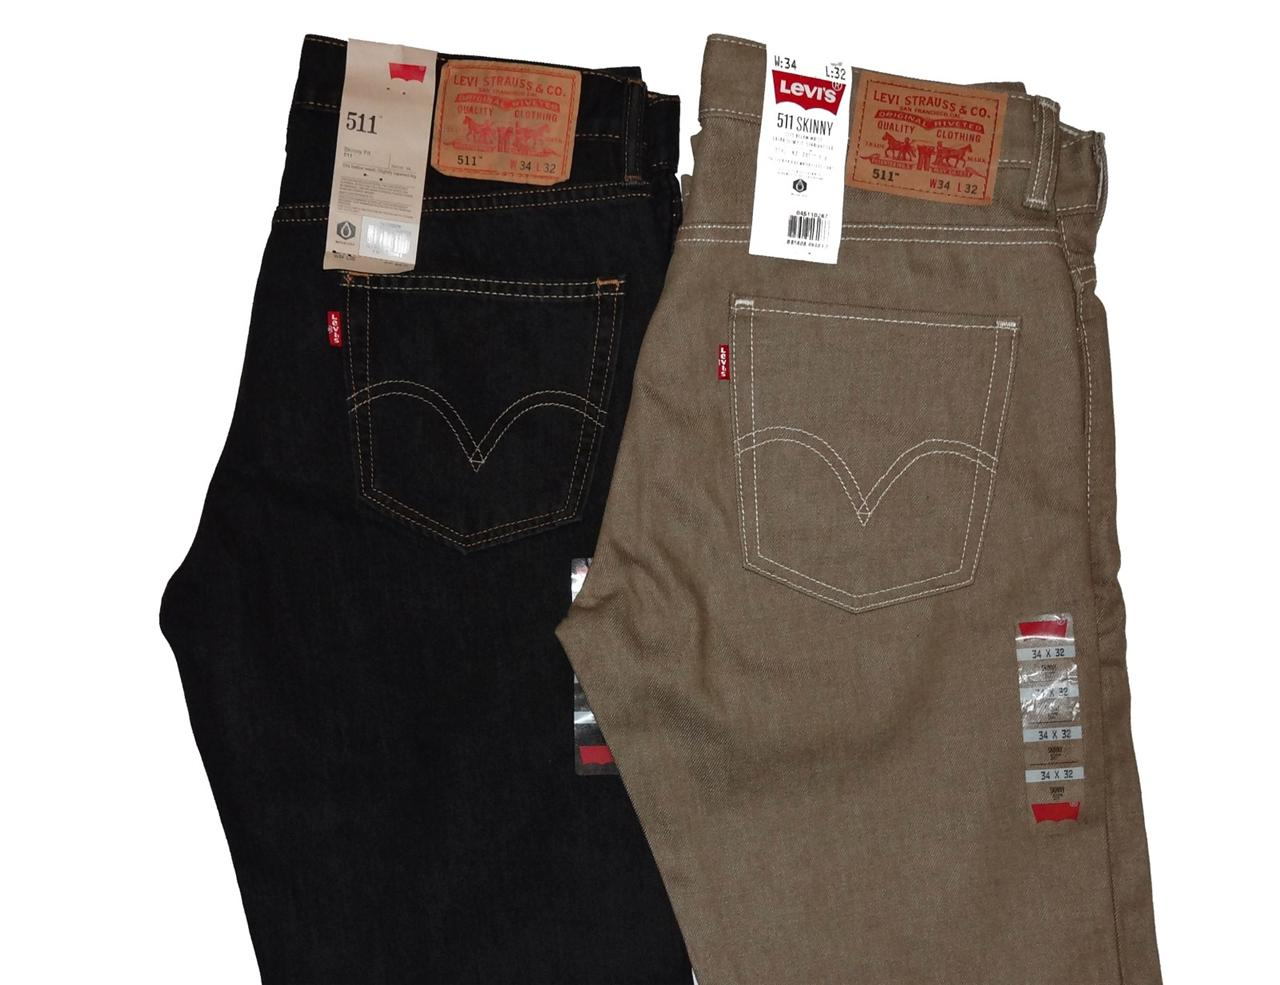 Levi's Men's 511 Skinny Fit Jeans 2 Colors 34 x 32 | eBay